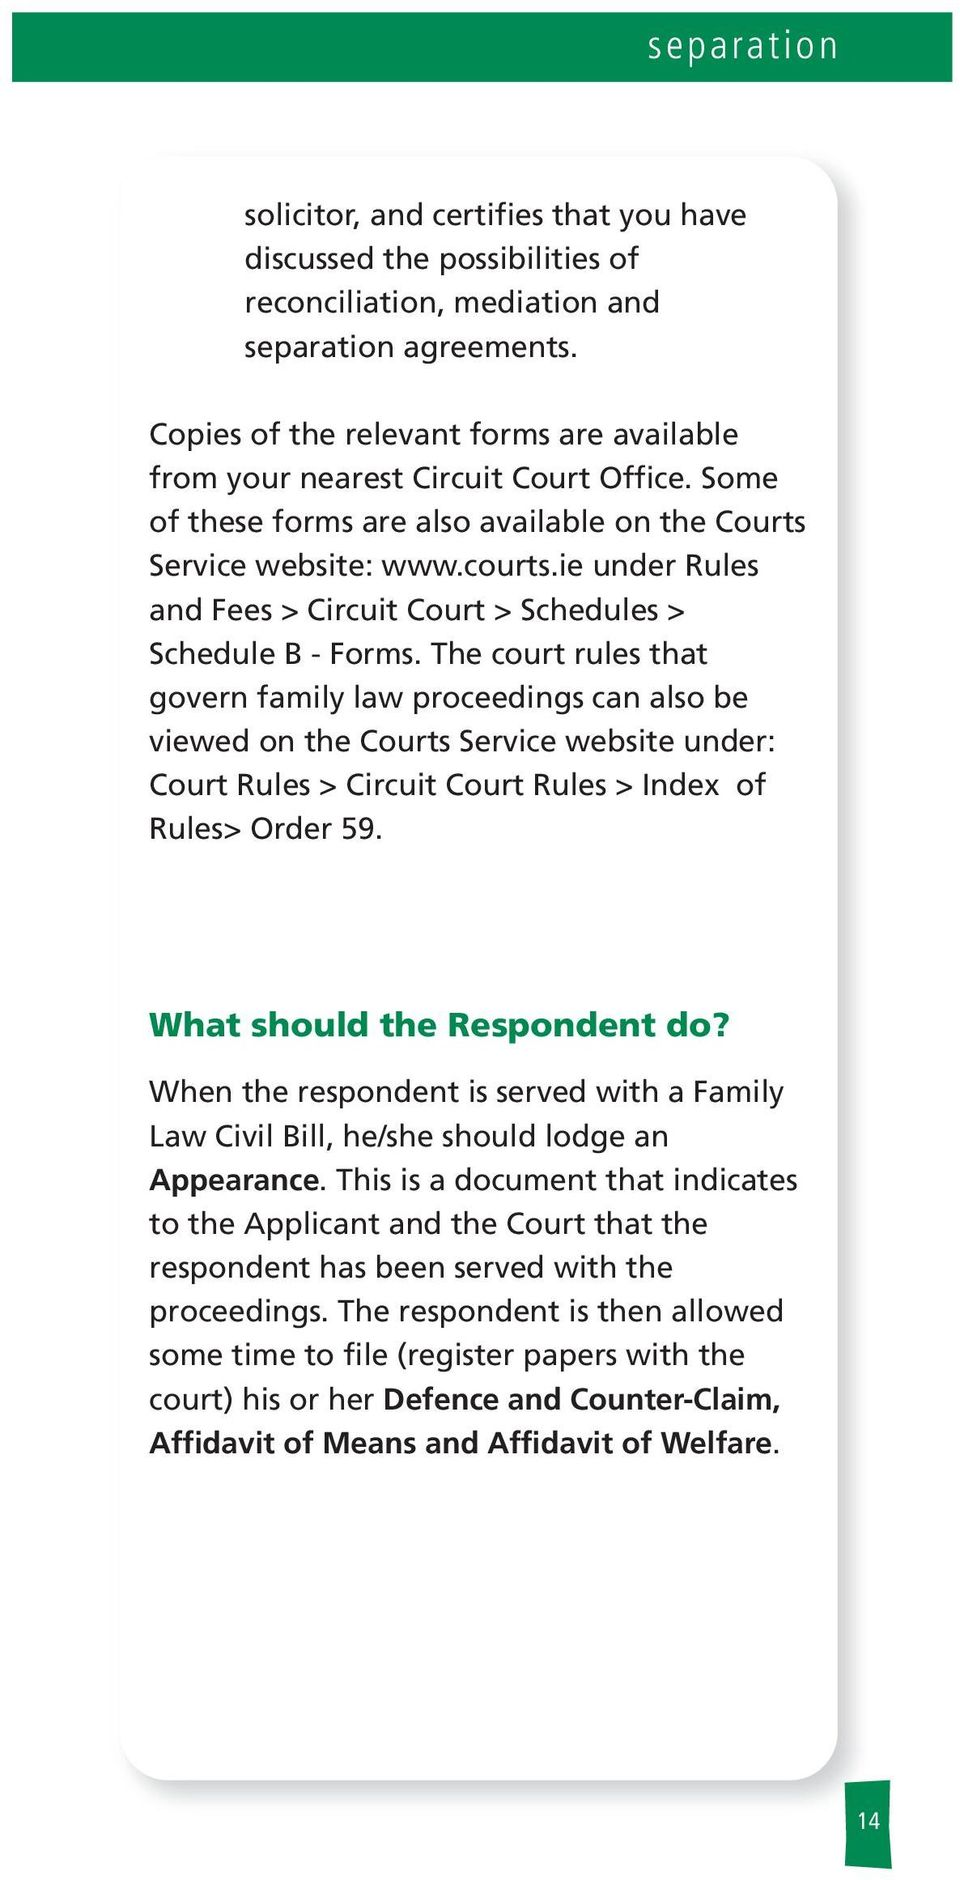 The court rues that govern famiy aw proceedings can aso be viewed on the Courts Service website under: Court Rues > Circuit Court Rues > Index of Rues> Order 59. What shoud the Respondent do?